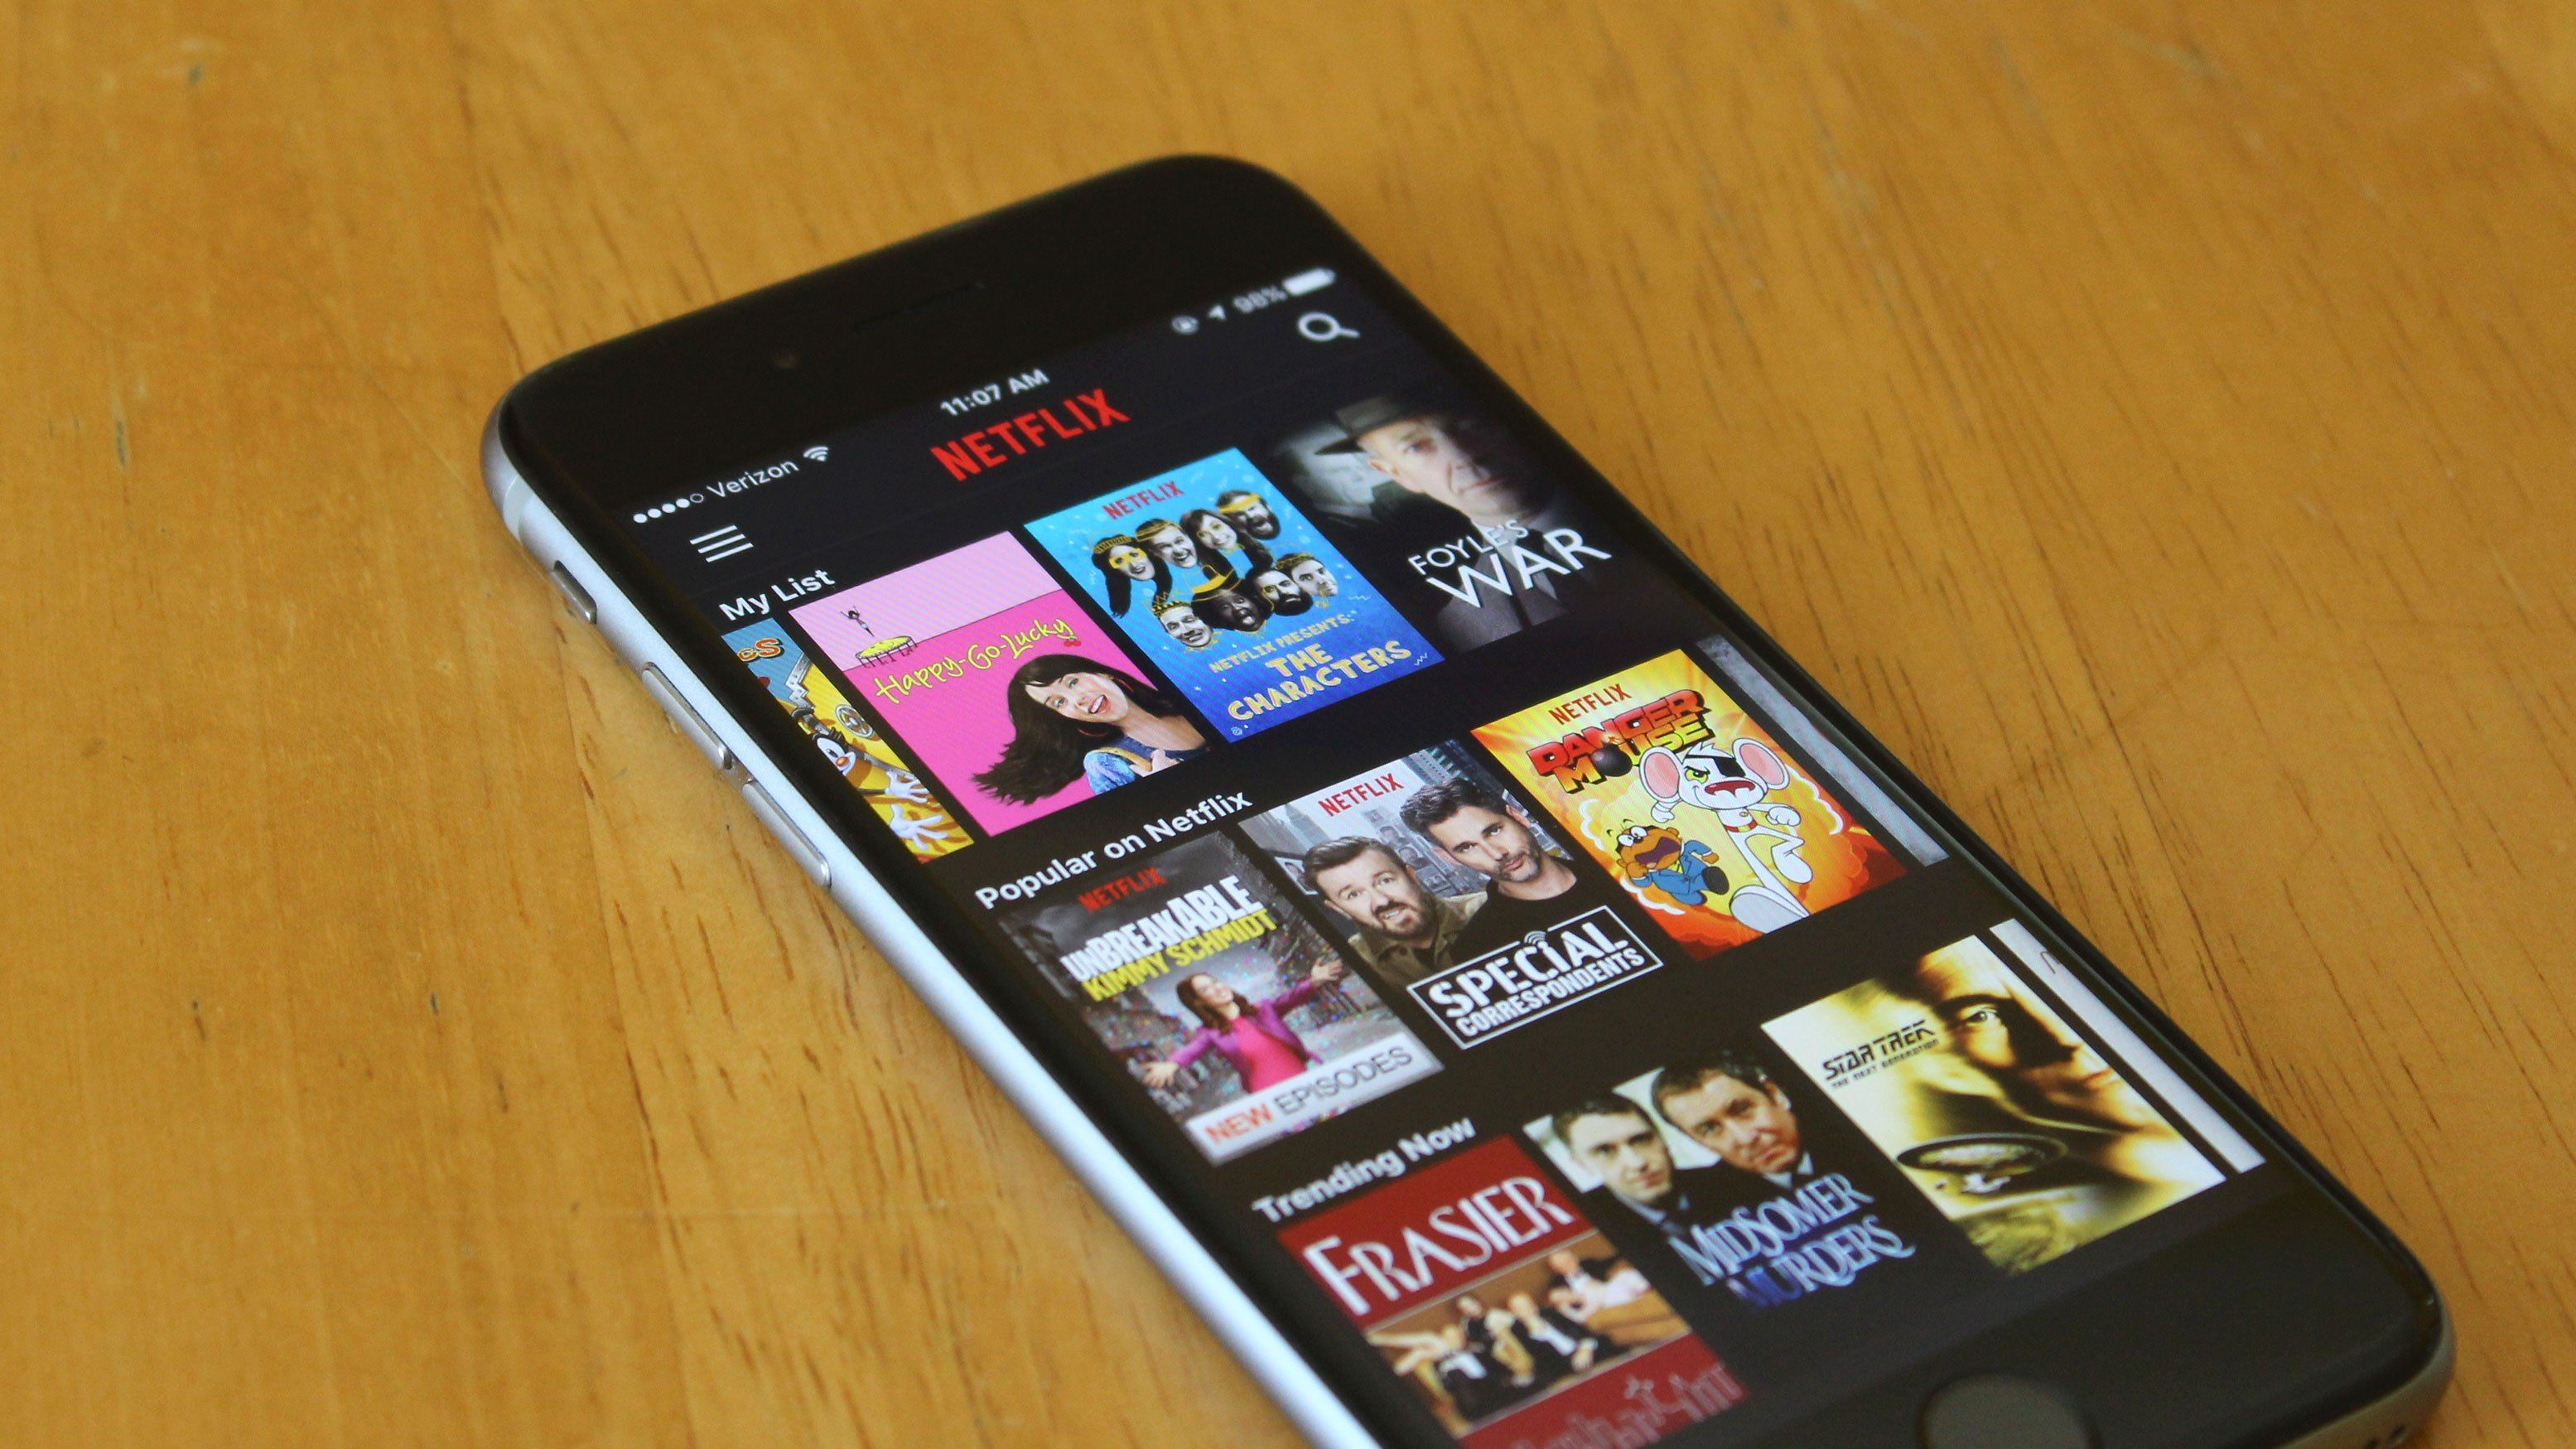 Earlier this year, Netflix was seen testing a bypass of